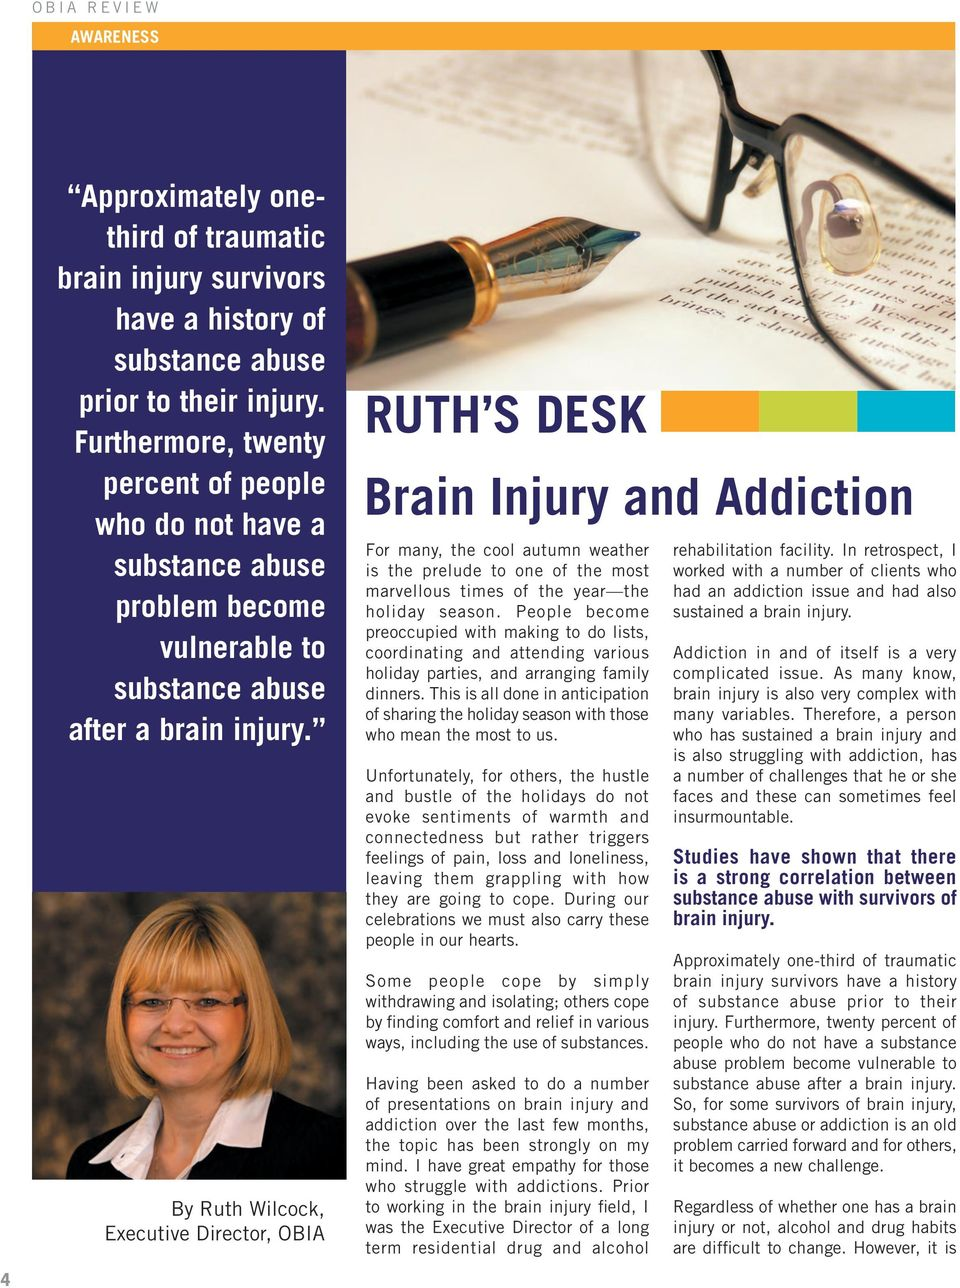 By Ruth Wilcock, Executive Director, OBIA RUTH S DESK Brain Injury and Addiction For many, the cool autumn weather is the prelude to one of the most marvellous times of the year the holiday season.